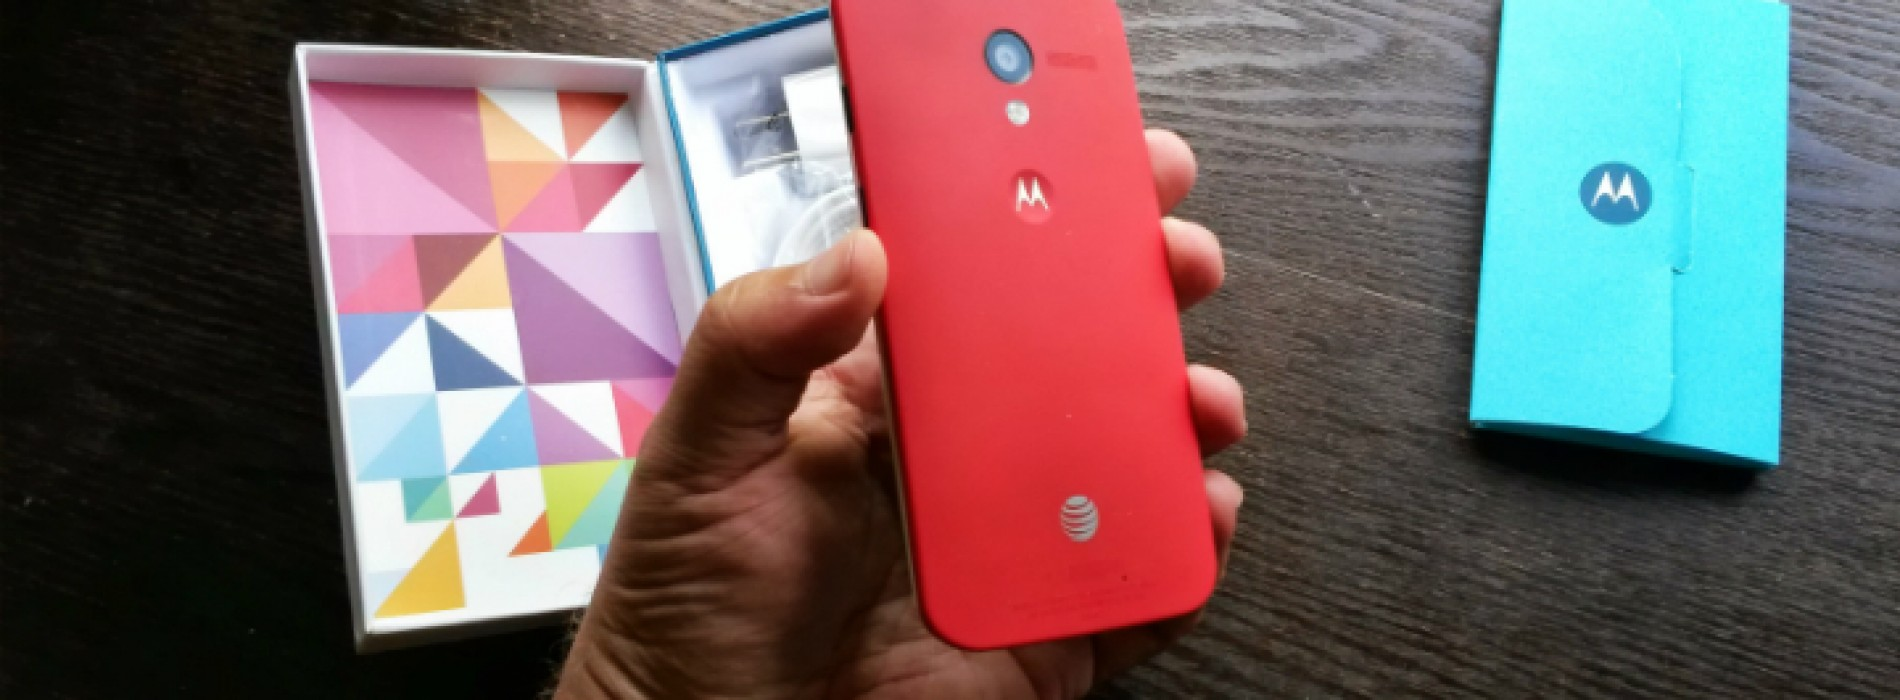 Motorola VP confirms Moto X will receive Android L update